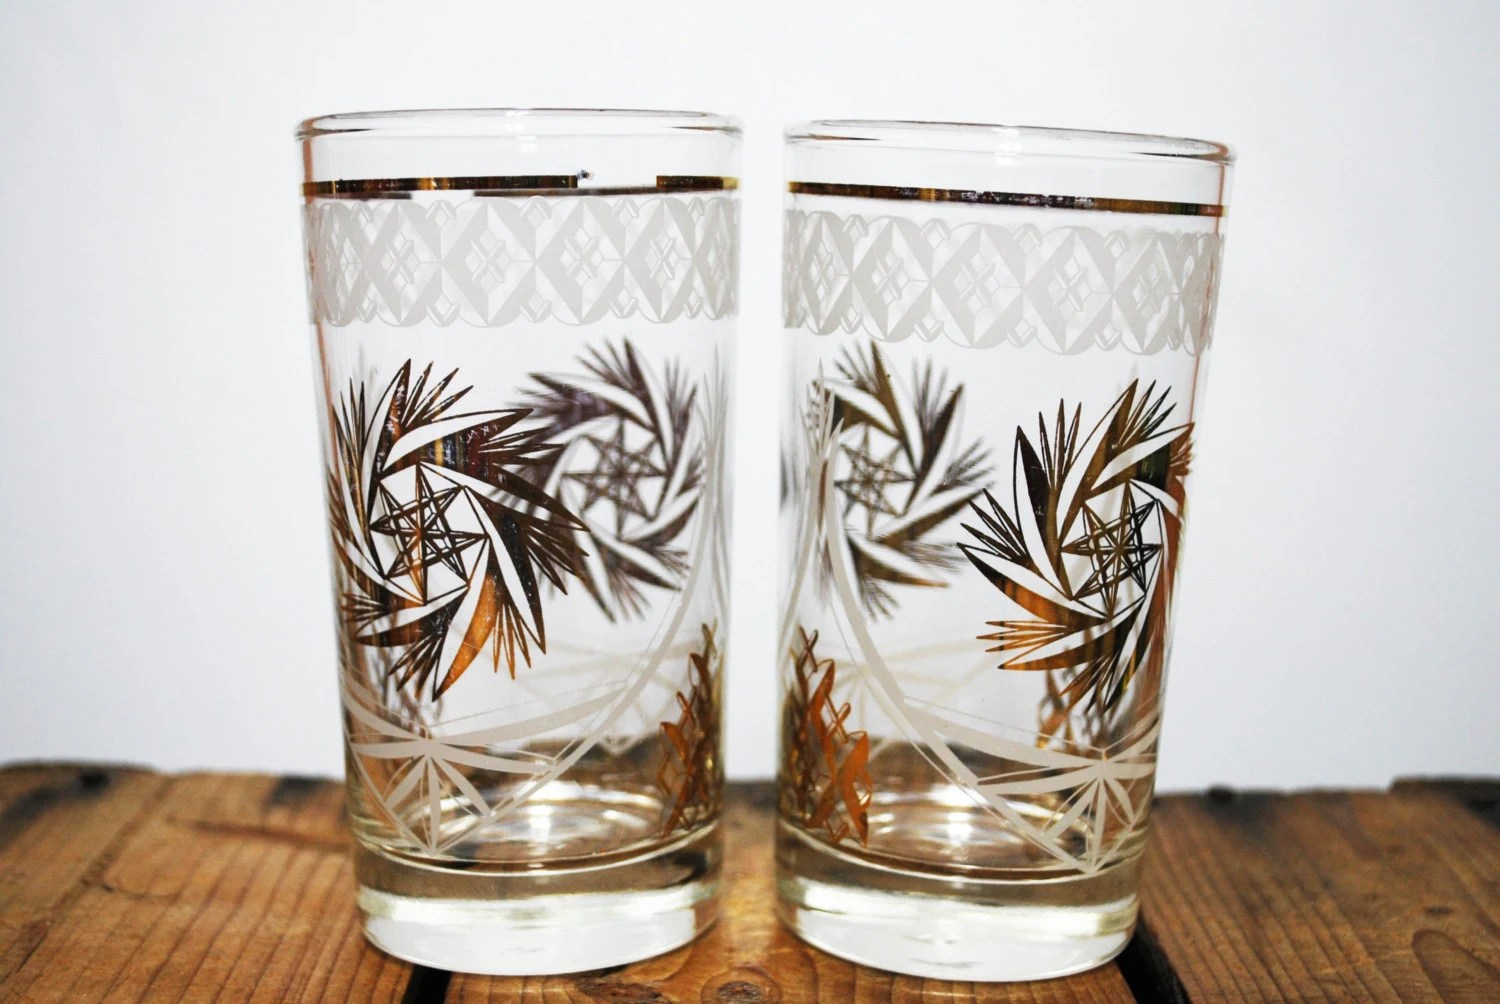 Drinking Glasses Designs Vintage Drinking Glasses With Gold Star Design Set Of 2